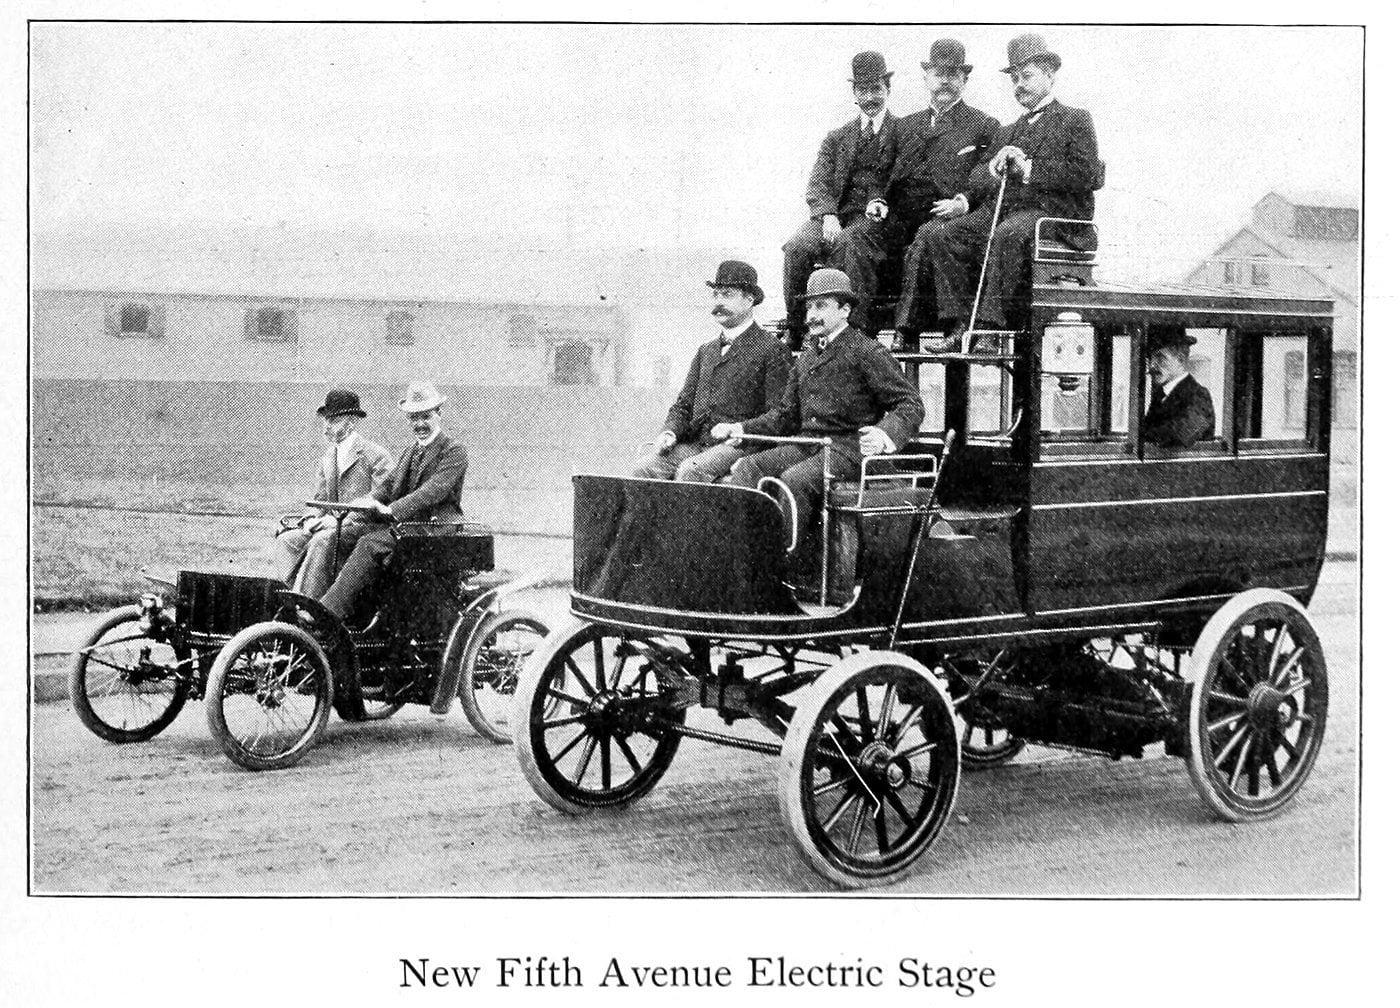 New Fifth Avenue electric stage (1899)